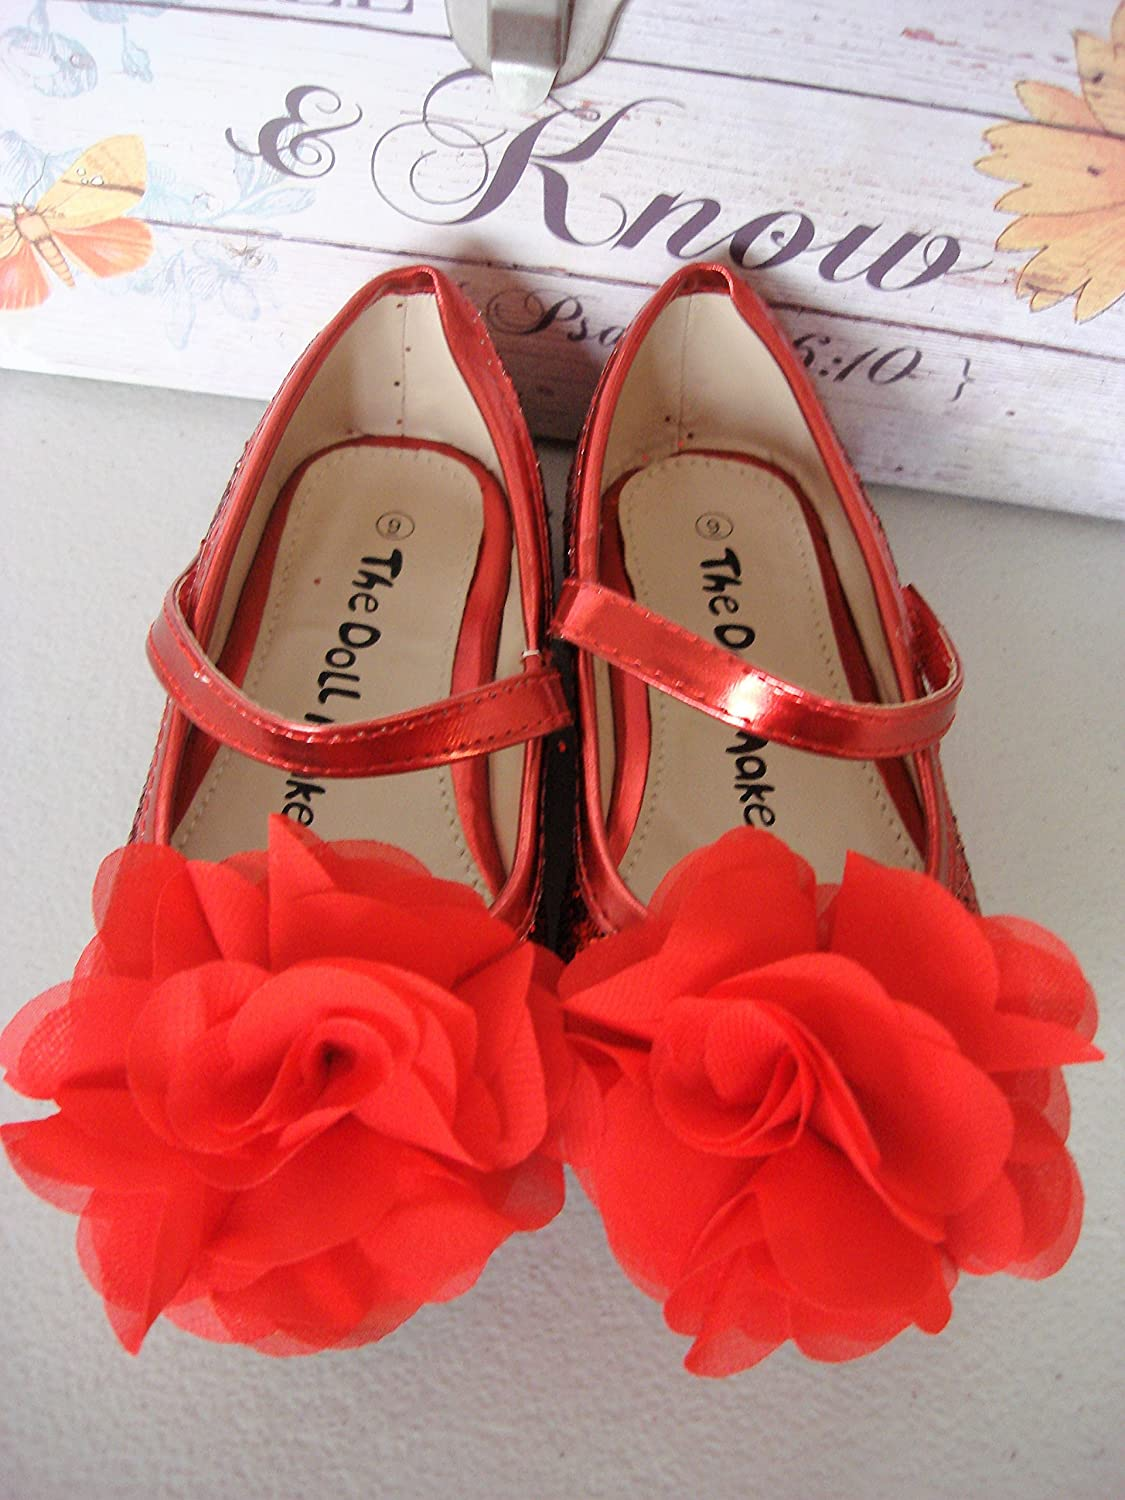 Wedding party flower girl sparkling s flower shoes glitter sparkling wedding party flower girl sparkling s flower shoes glitter sparkling chiffon b06xxt2jcd floral on topper 3 colors red 73b55a8 ctdesing mightylinksfo